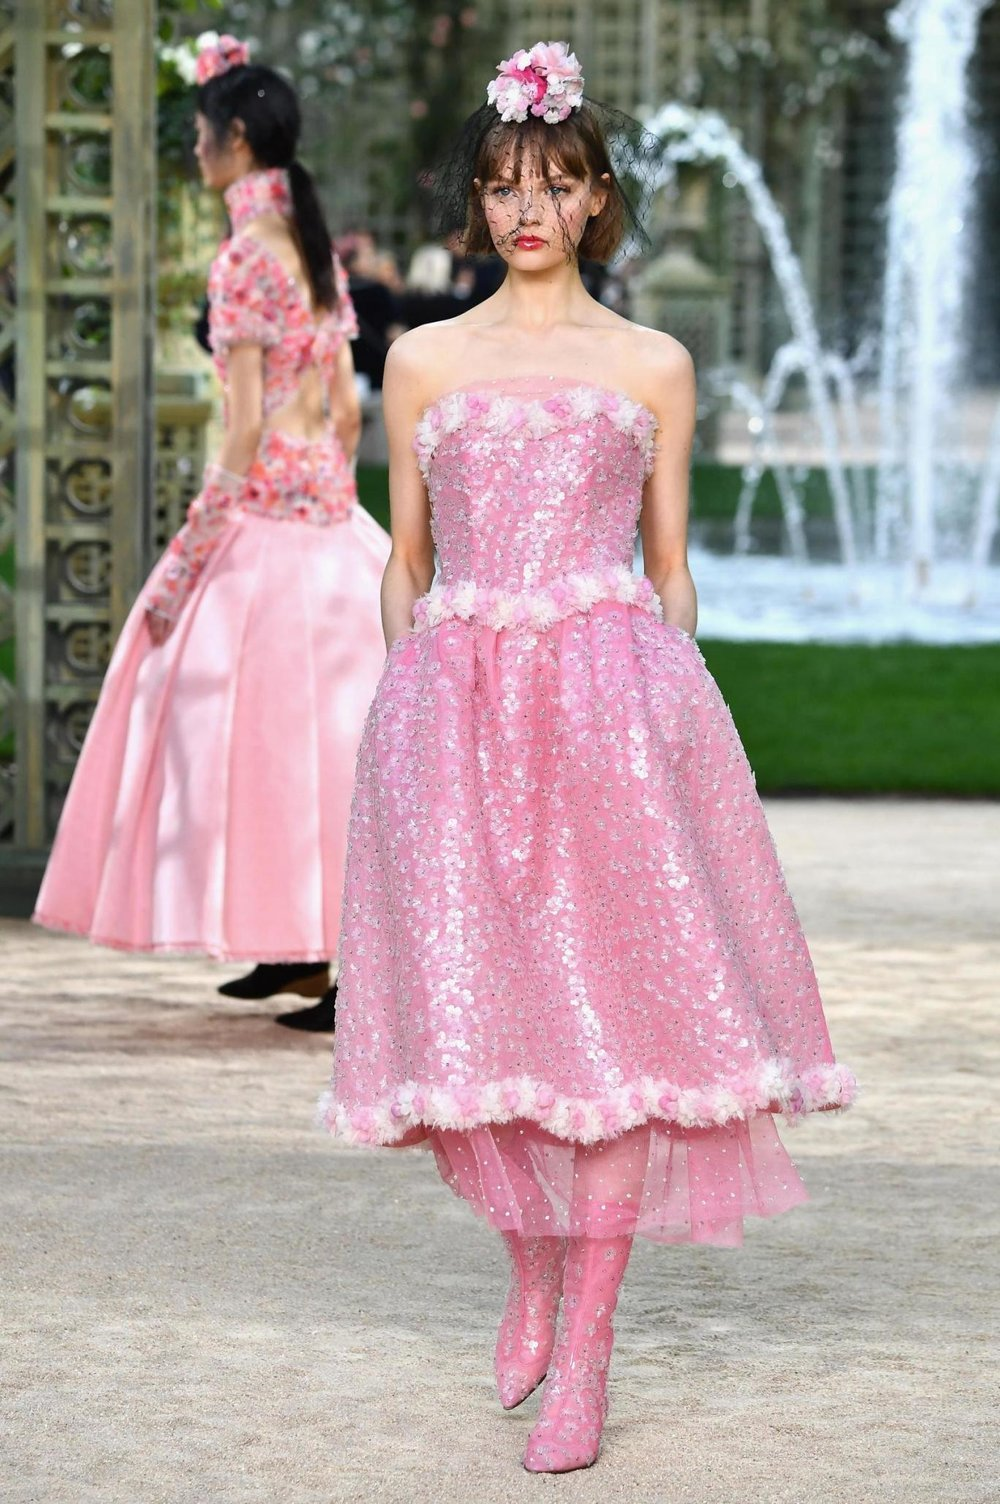 Chanel SS18 Haute Couture Paris show SOURCE:  http://www.vogue.co.uk/shows/spring-summer-2018-ready-to-wear/chanel/collection